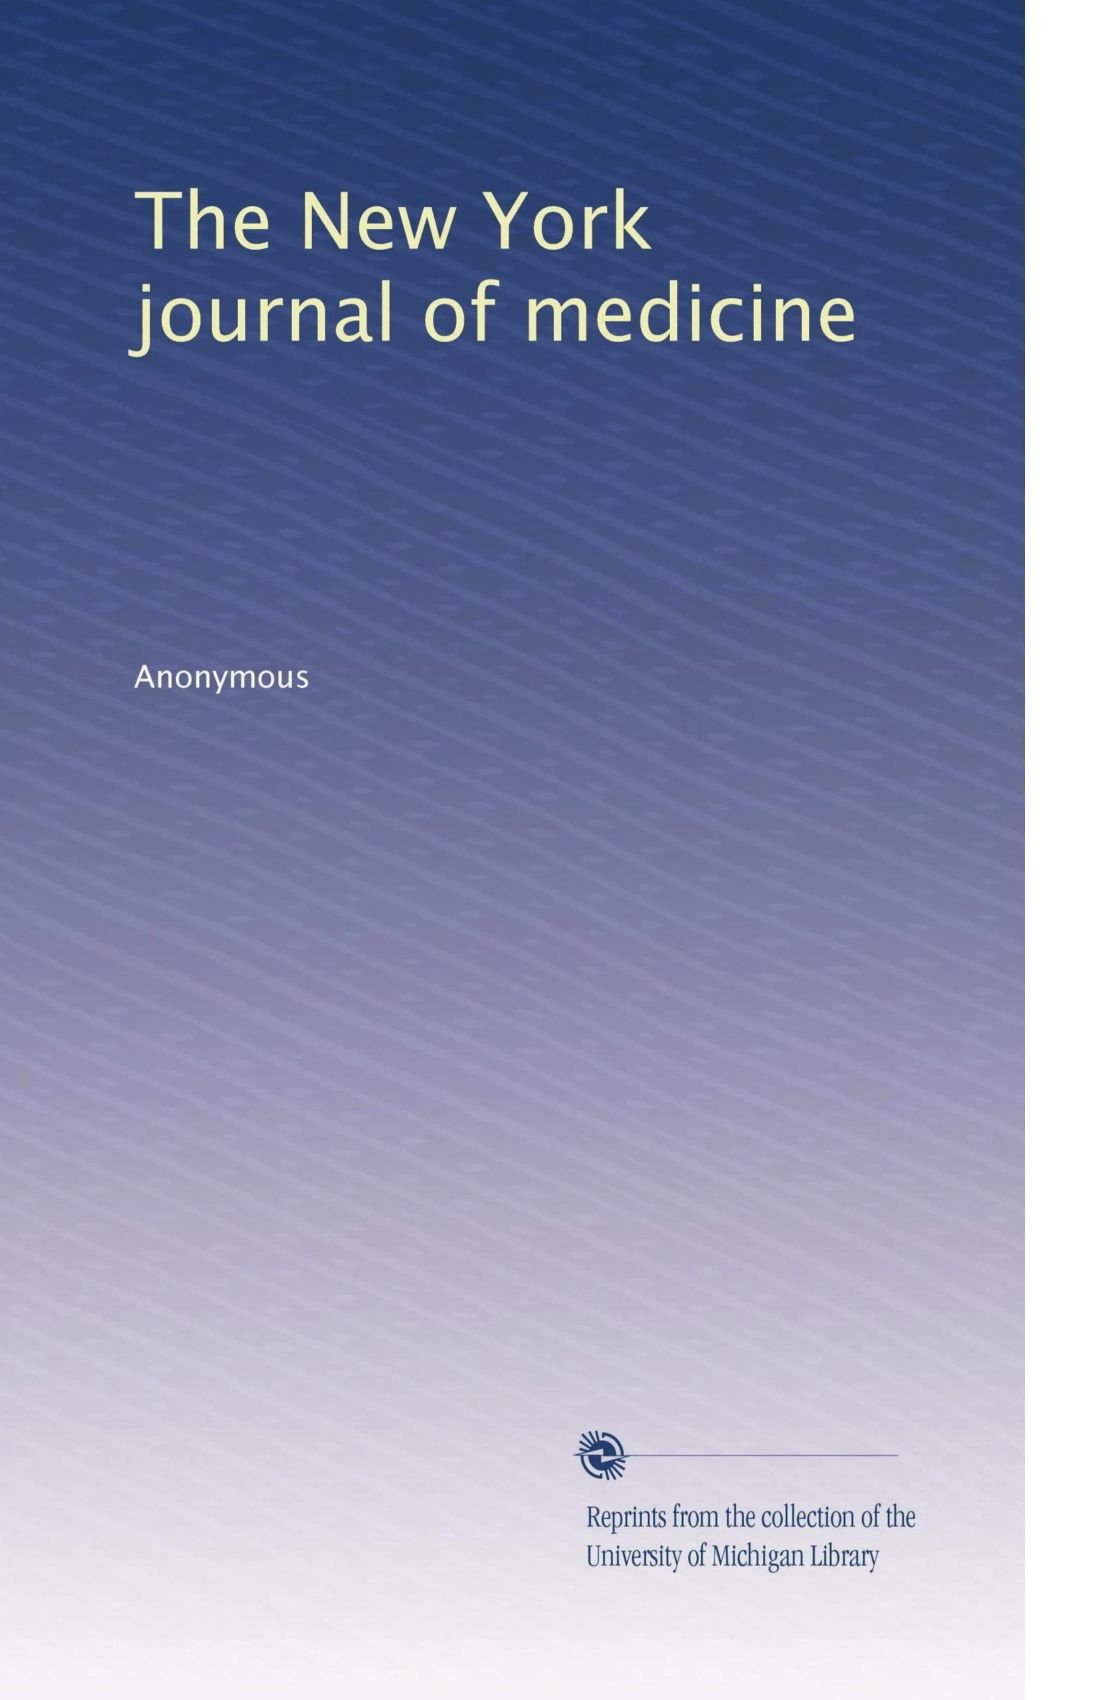 The New York journal of medicine PDF